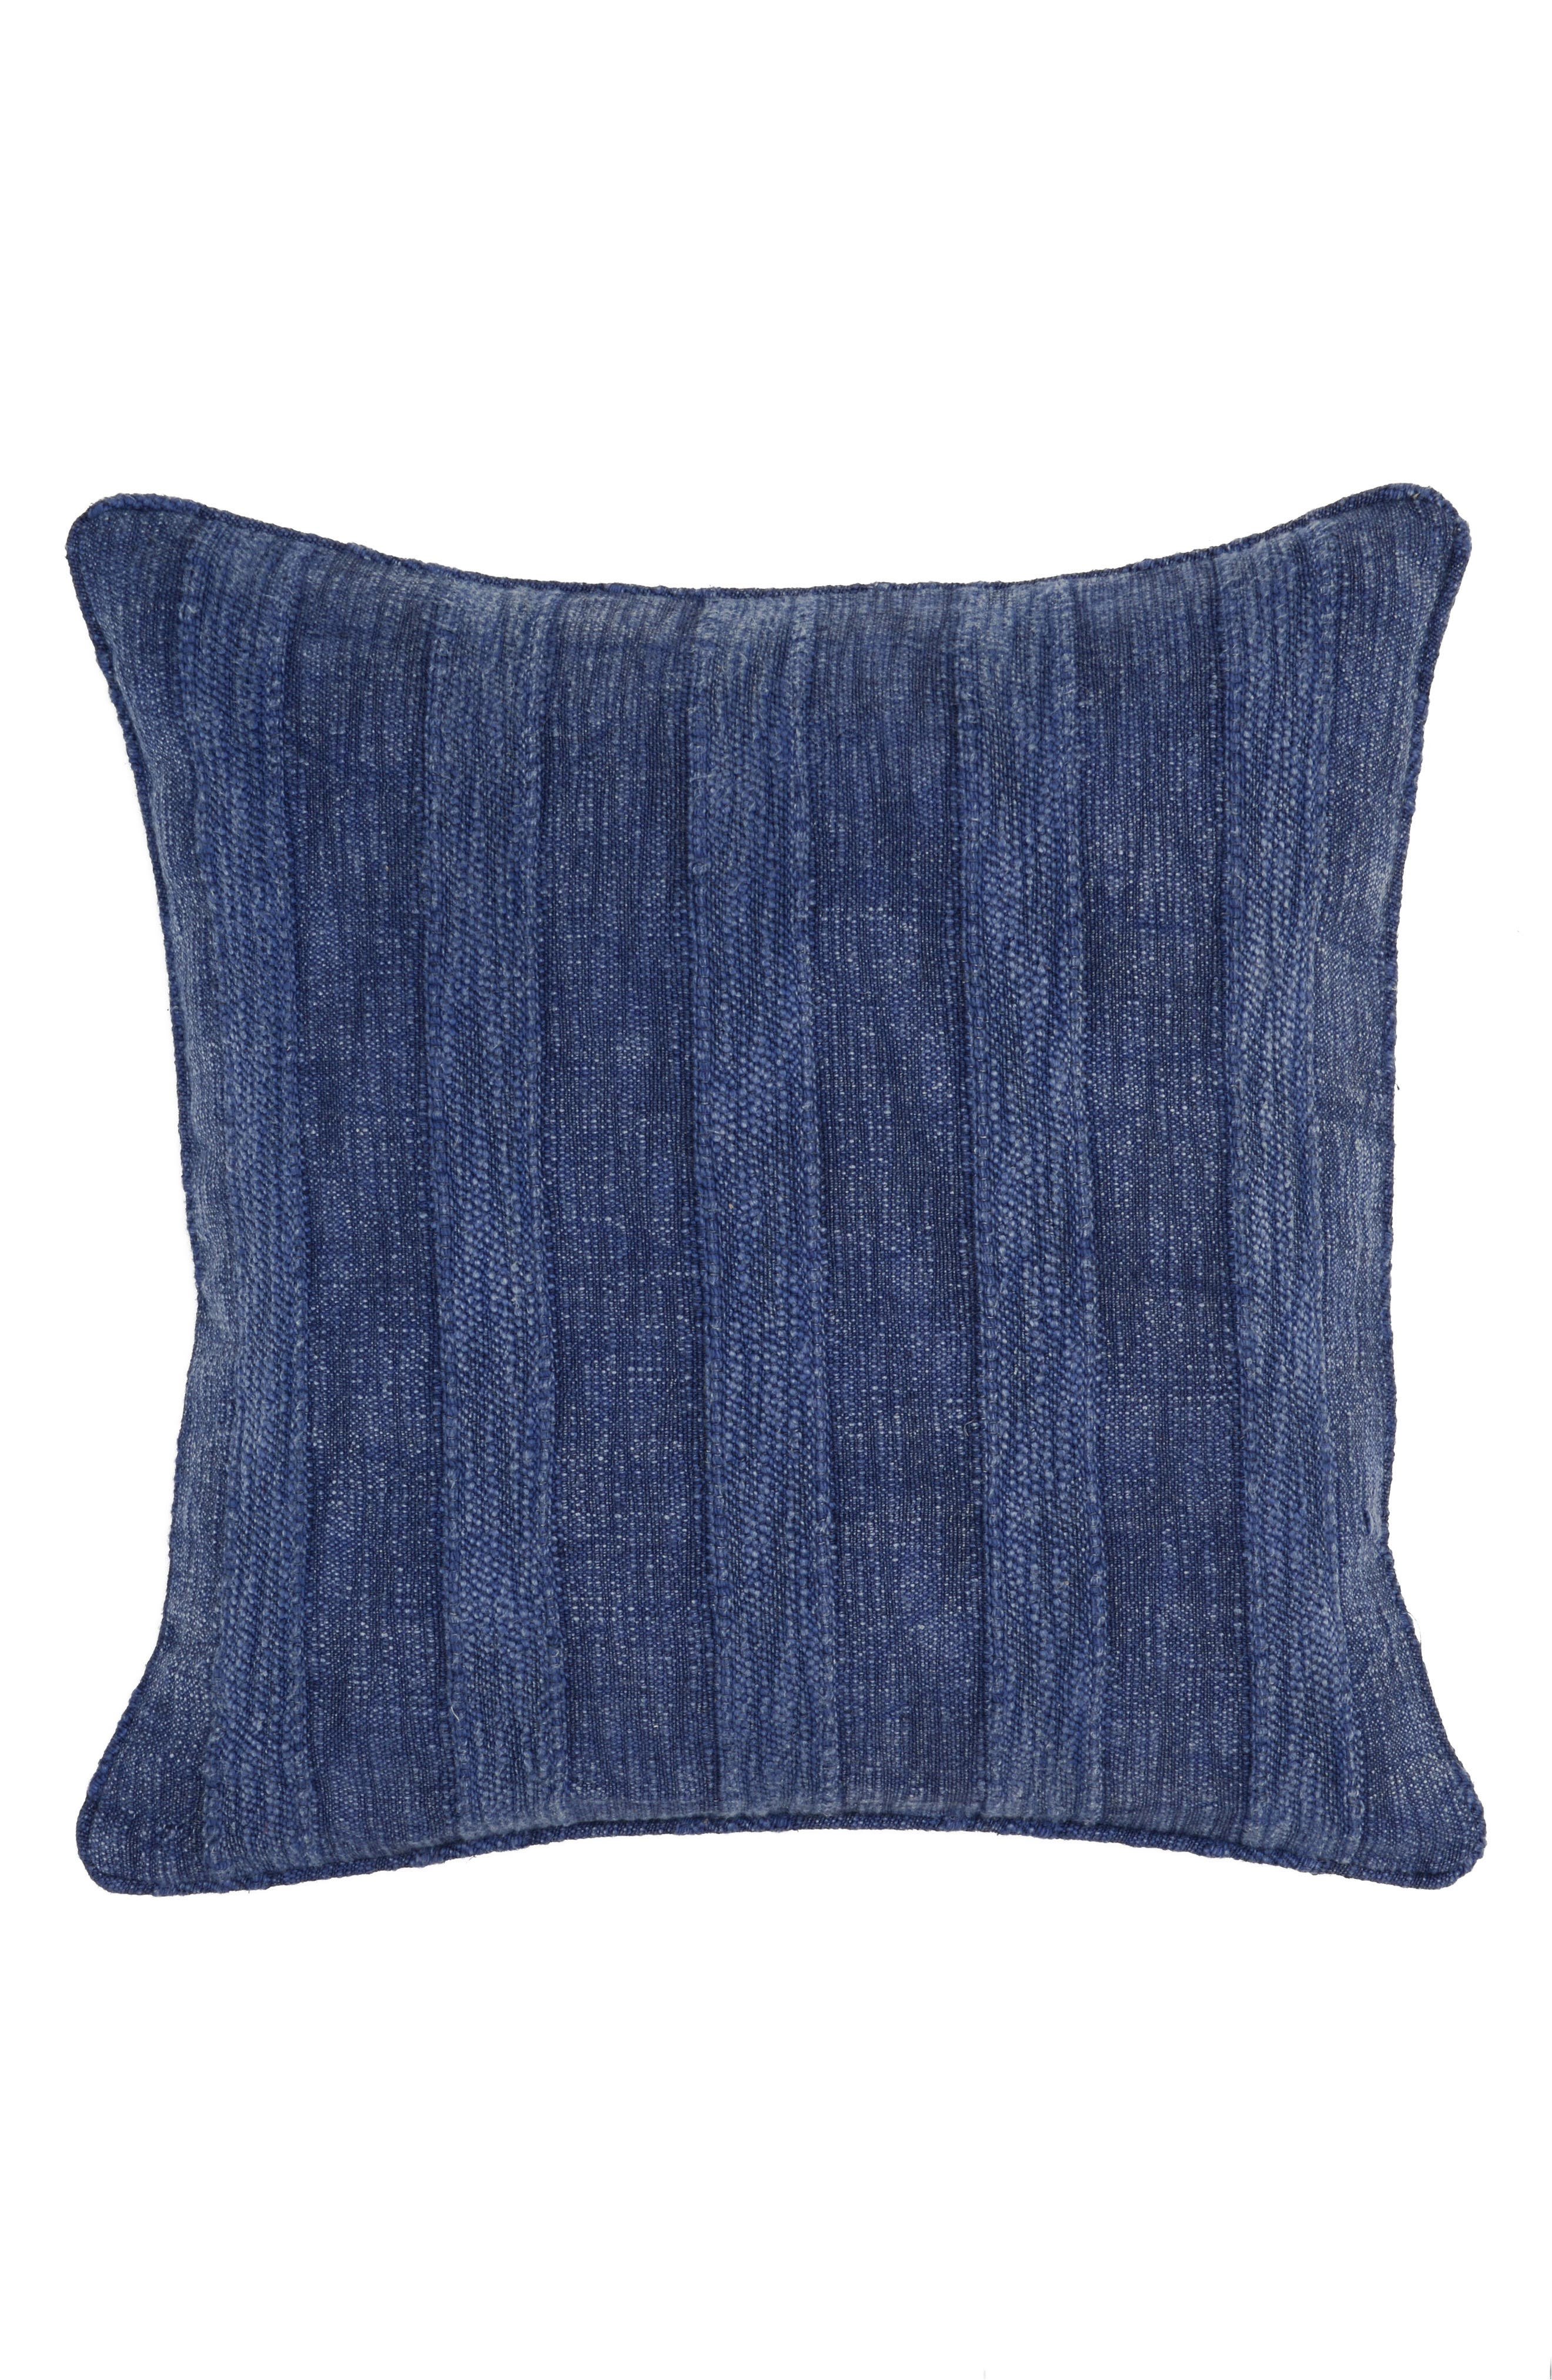 Heirloom Pillow,                         Main,                         color,